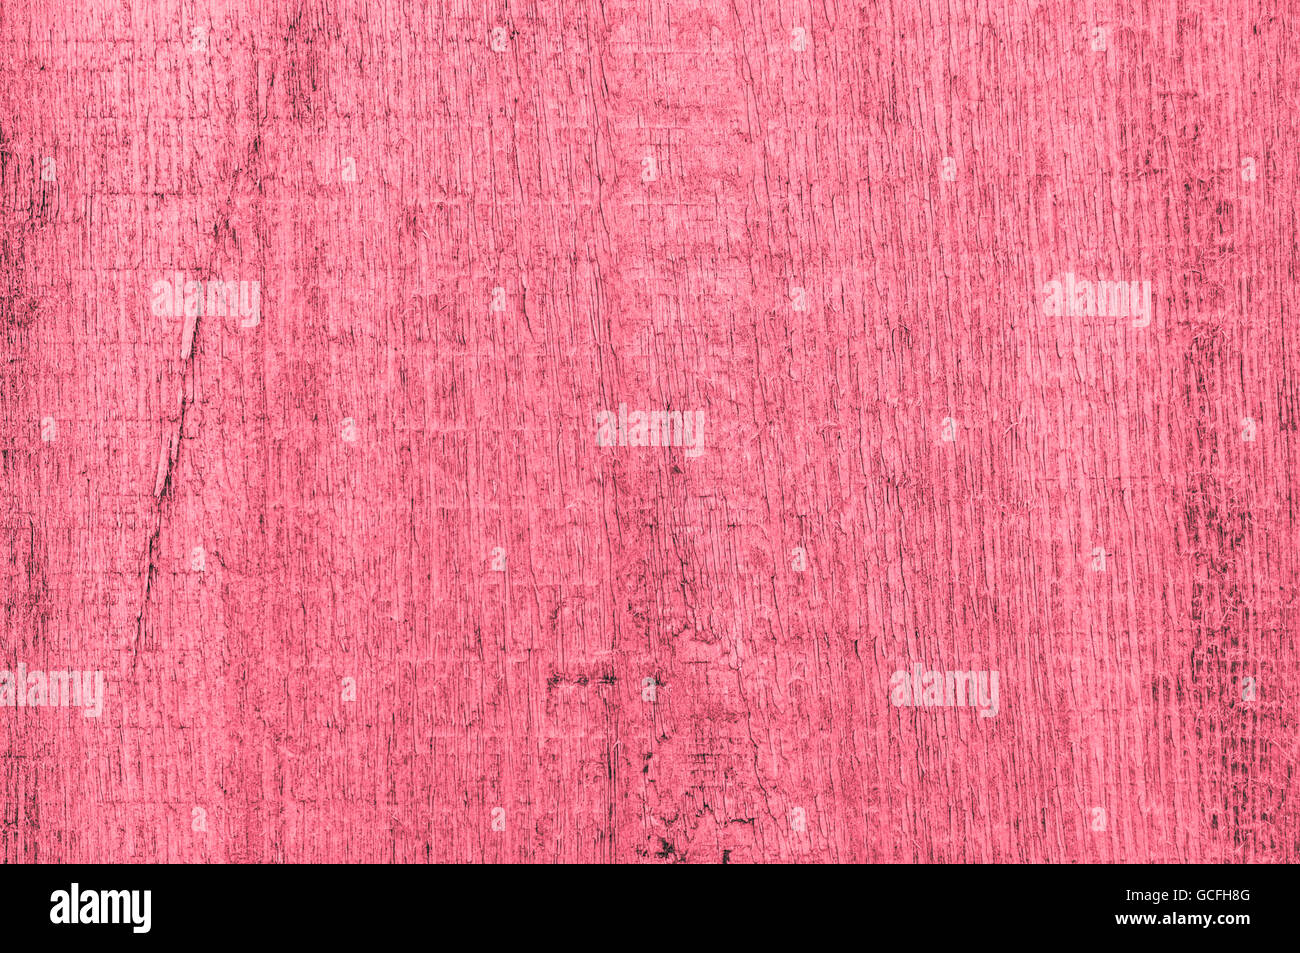 Rough grainy wood mainly red reddish grayish colors - Stock Image